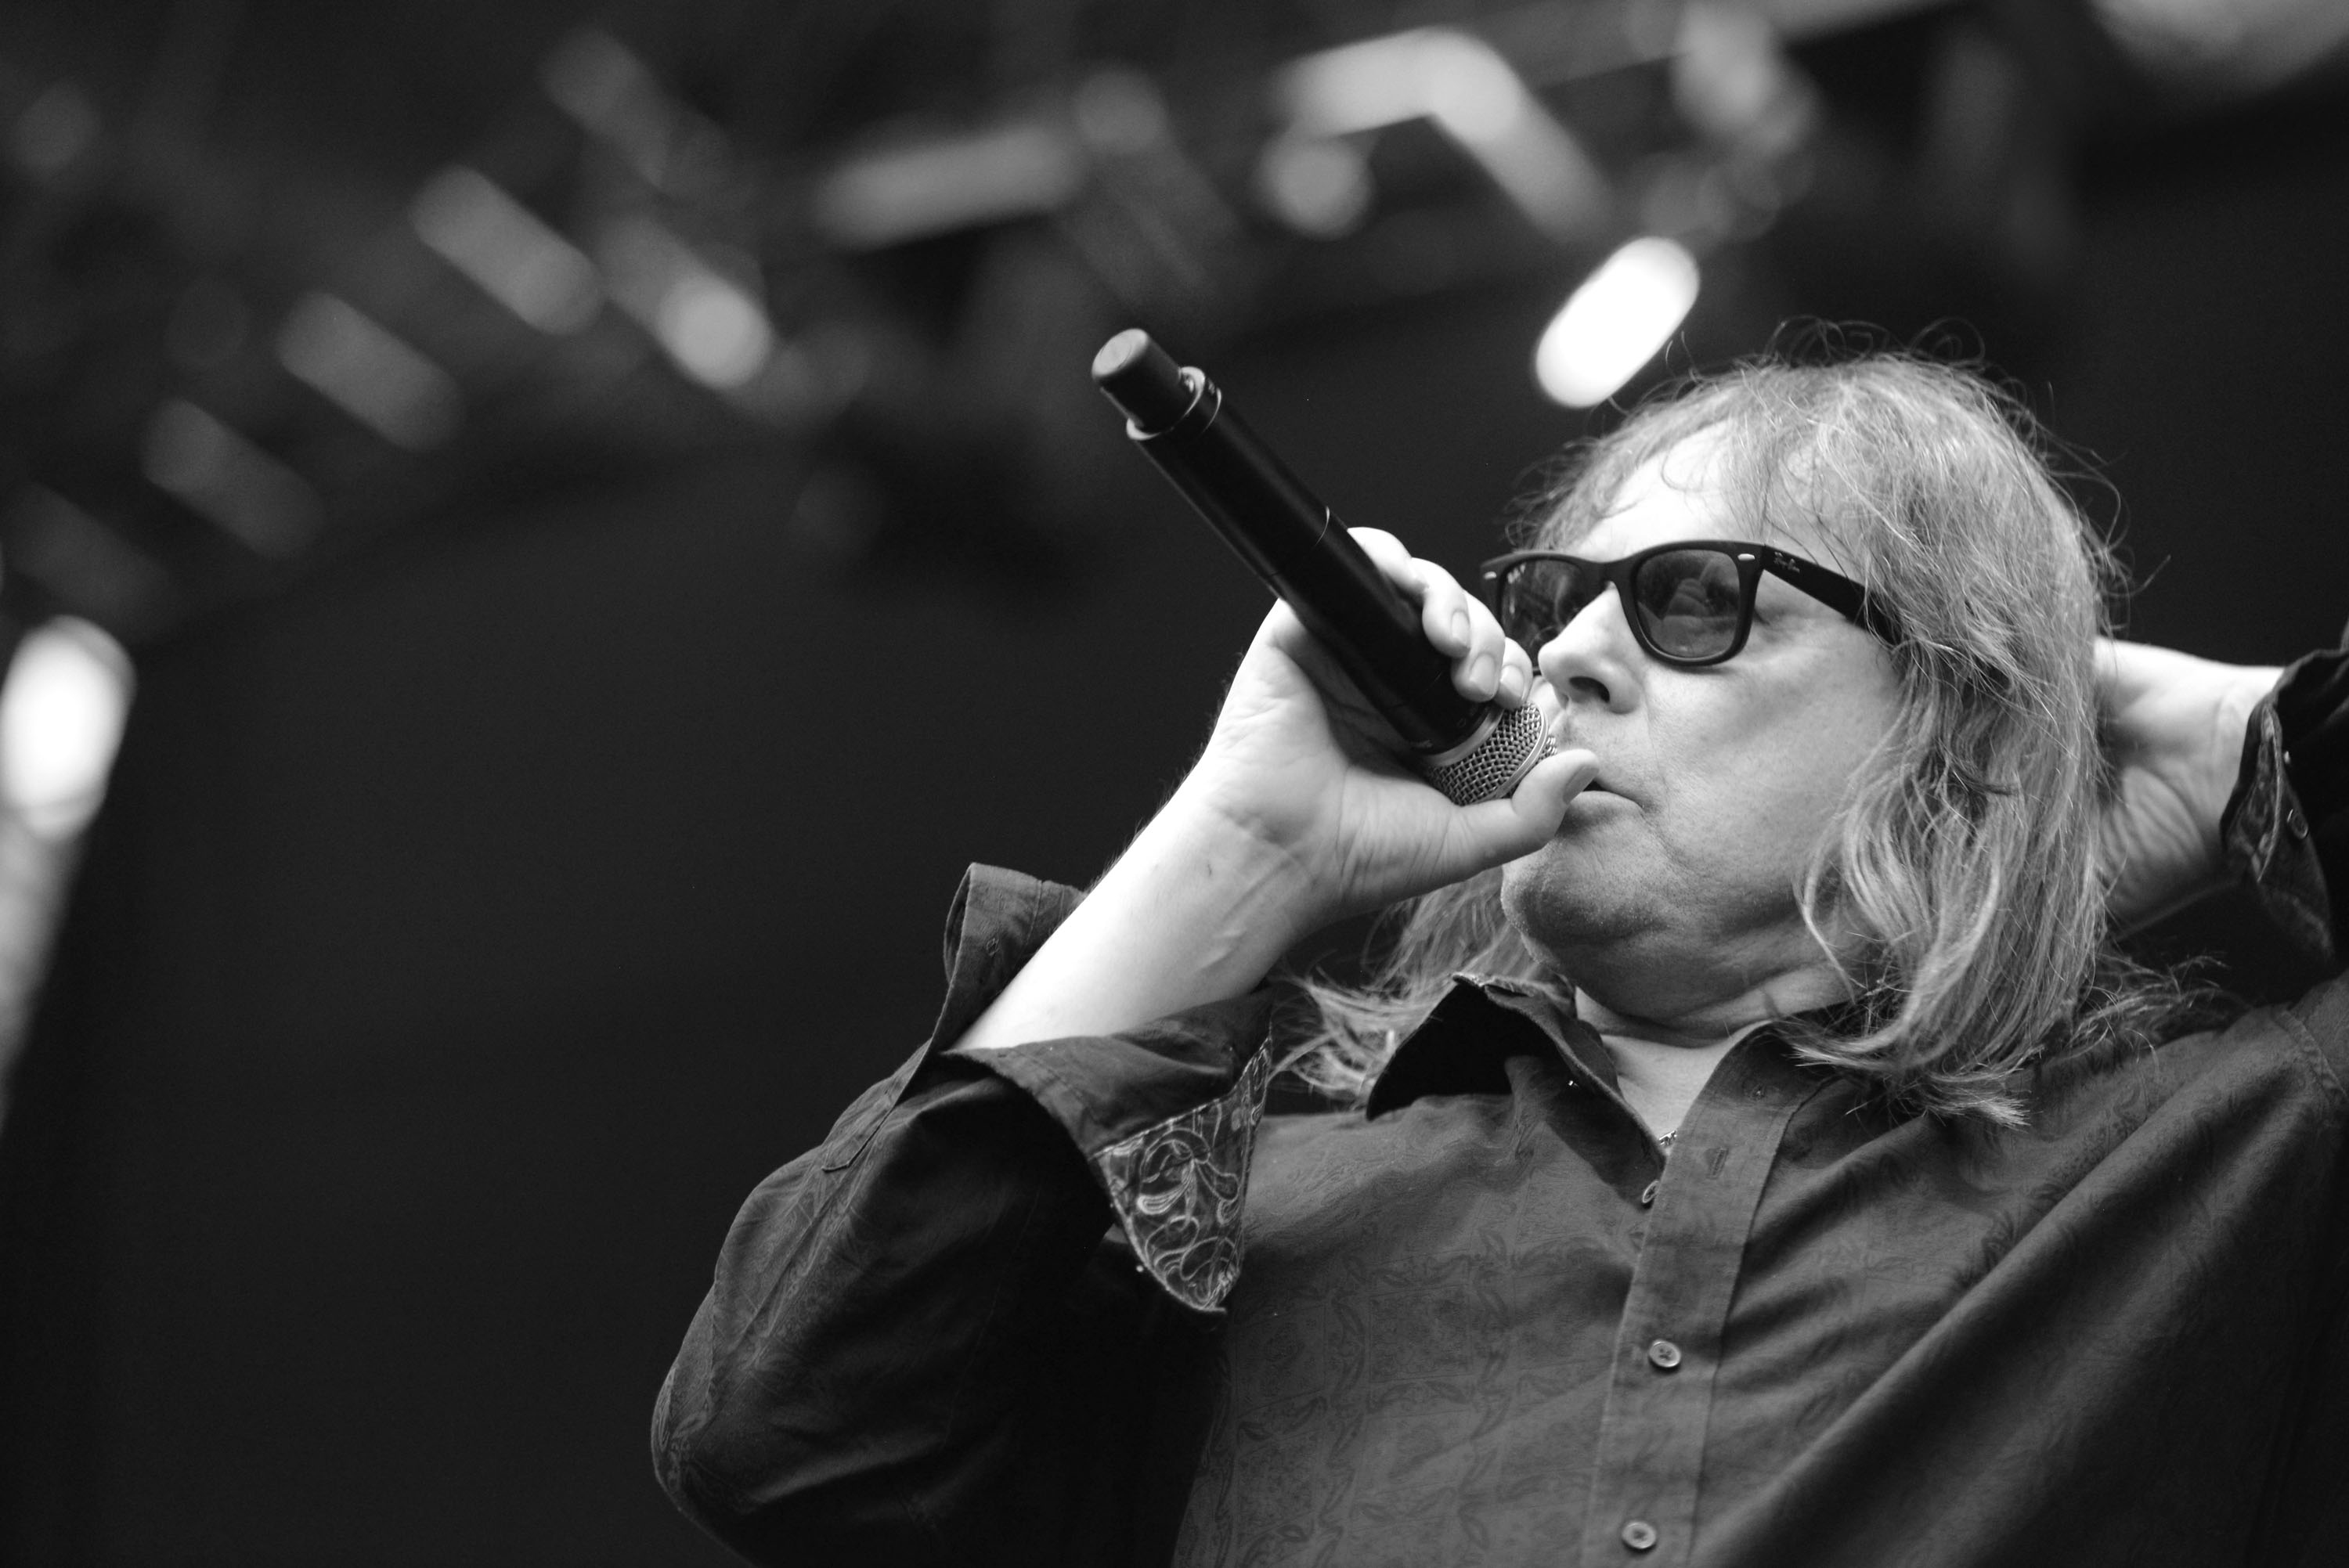 IRVINE, CA - AUGUST 15:  (EDITORS NOTE: Image has been converted to black and white) Singer Don Dokken of Dokken performs ons